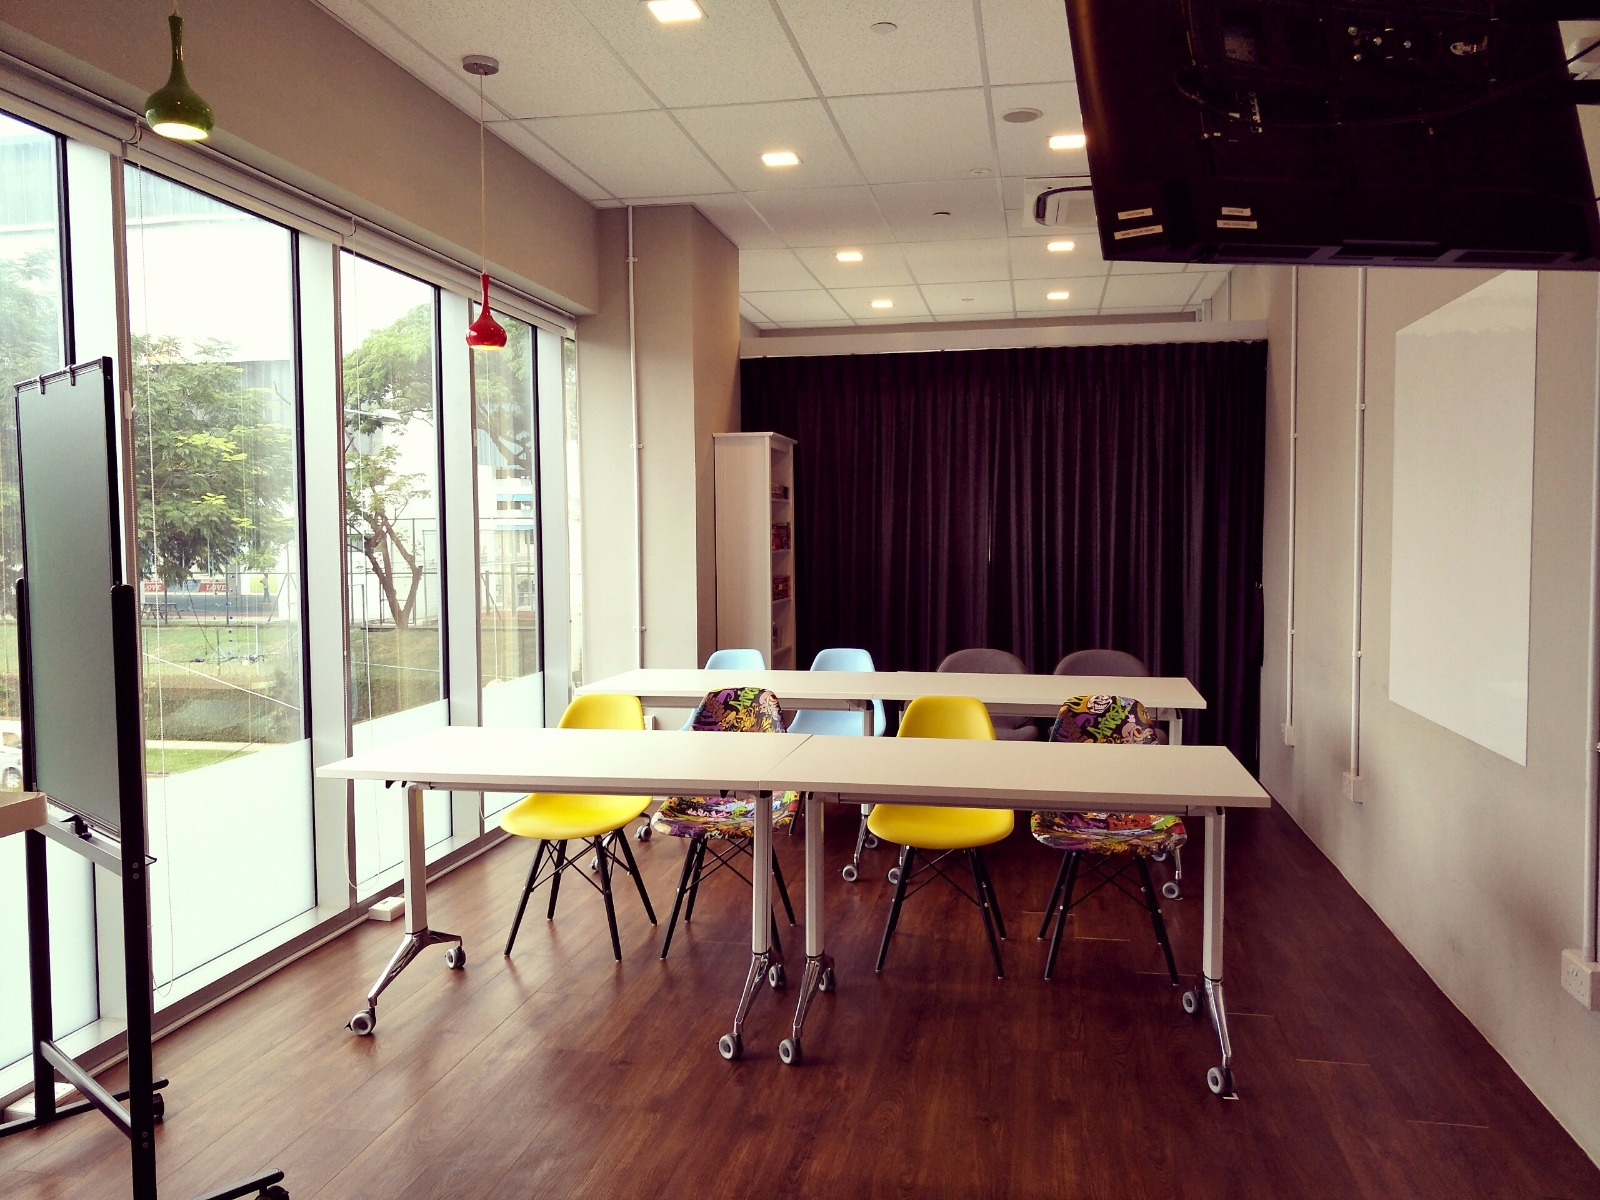 Affordable-training-seminar-rooms-venuerific-singapore-Project-central-seminar